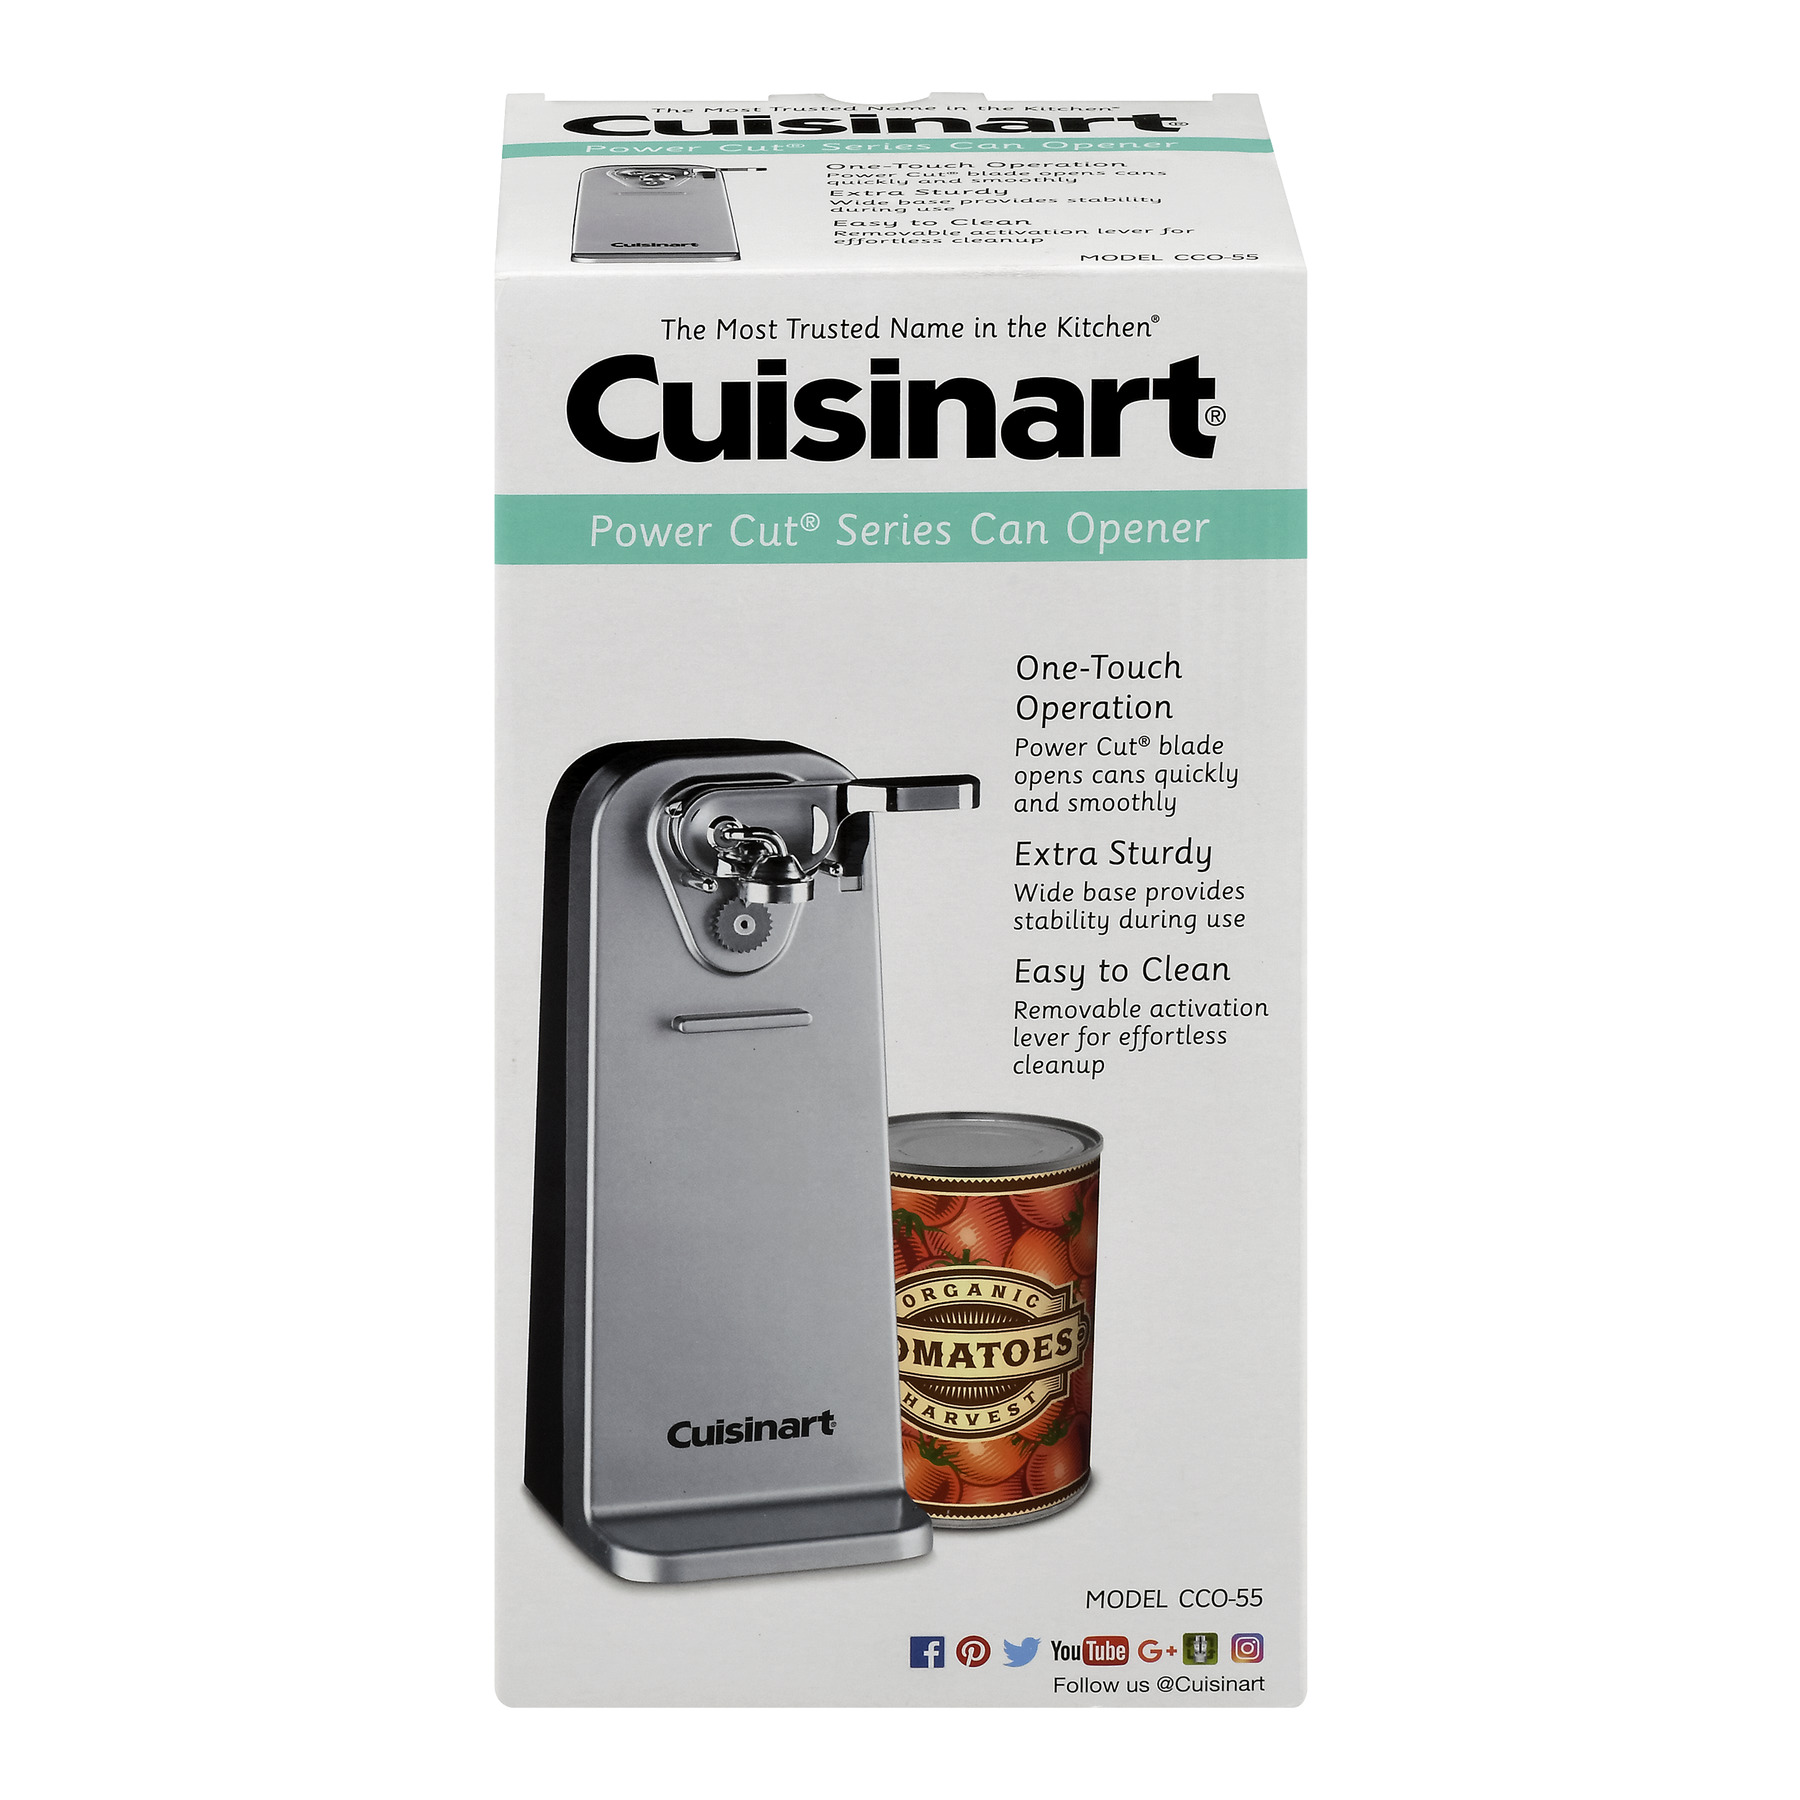 Cuisinart Power Cut Series Can Opener, 1.0 CT